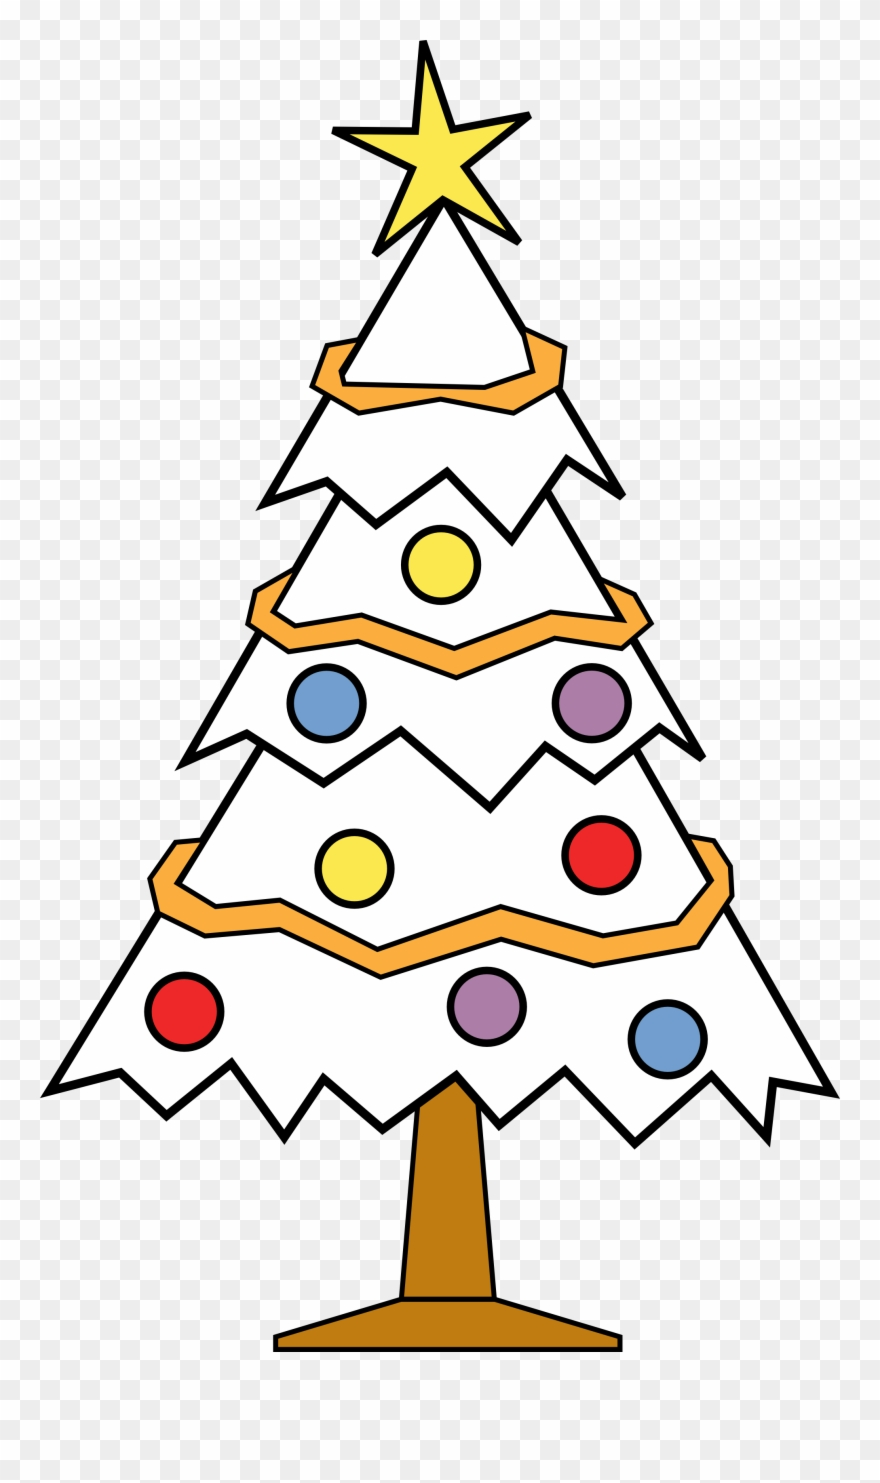 Christmas Images Free To Use.Free Black And White Christmas Tree Jpg Freeuse Download